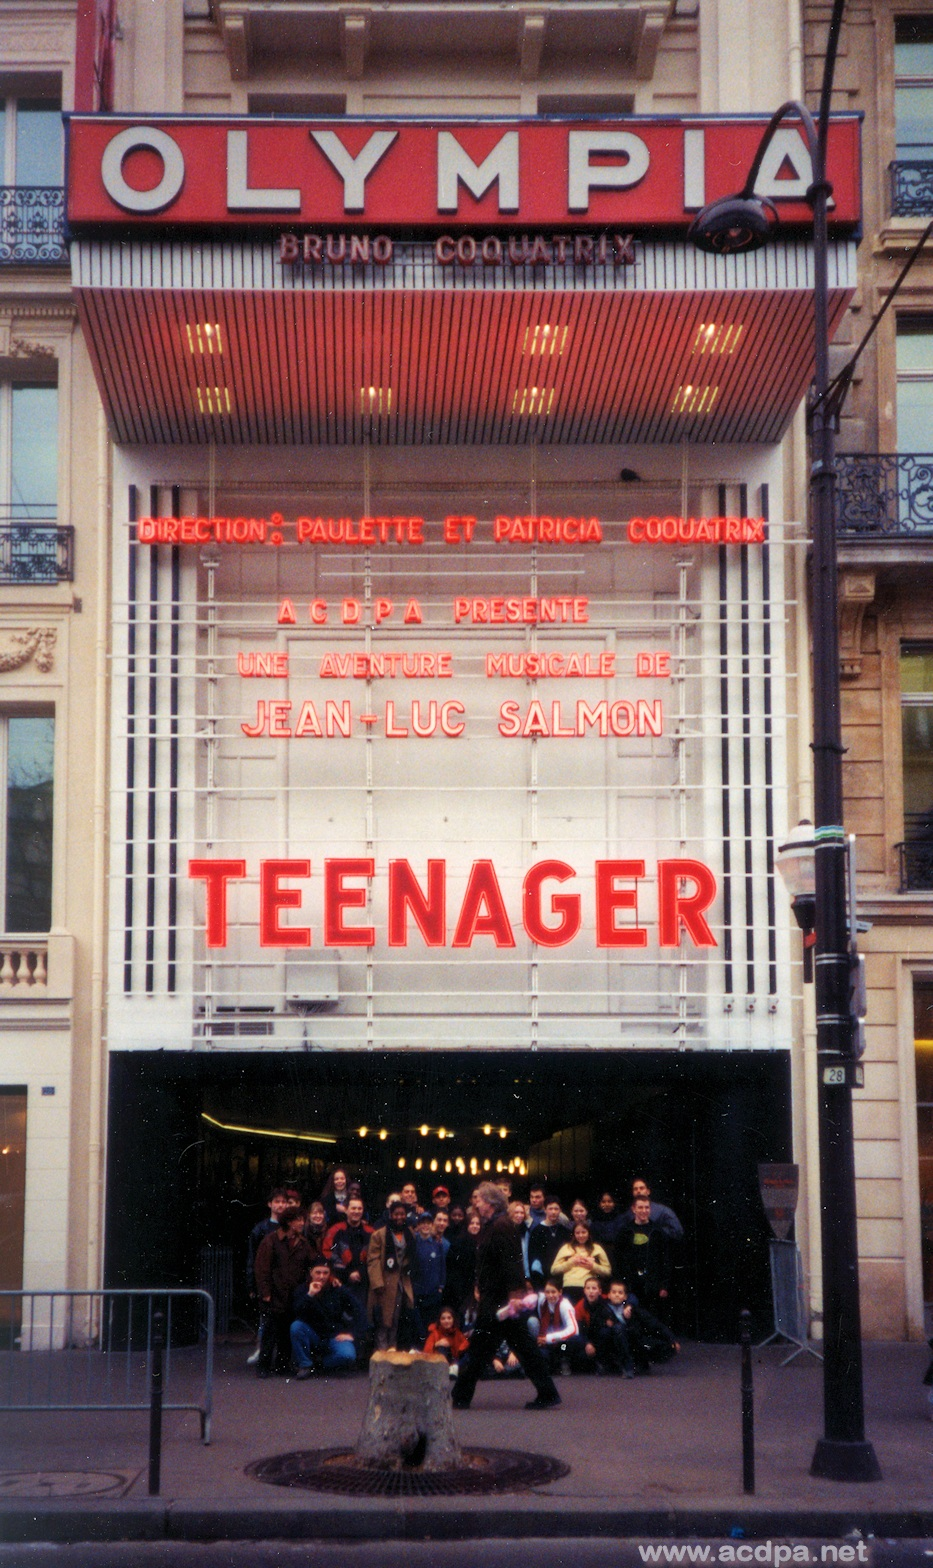 "La troupe ""Teenager"" devant l'Olympia"